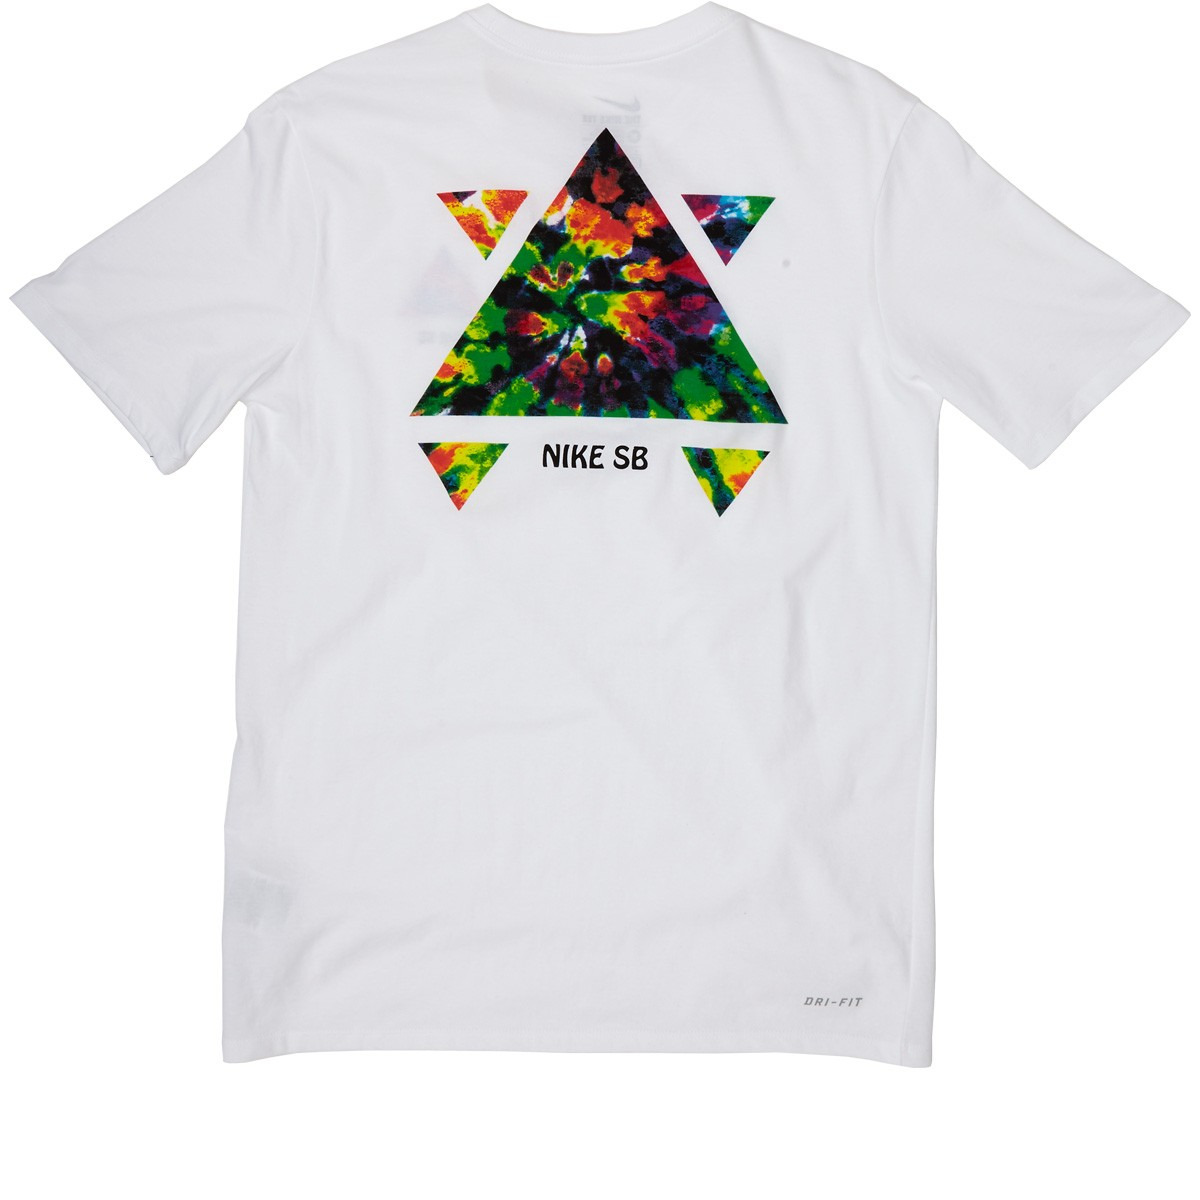 Nike sb tie dye qs t shirt white for Nike tie dye shirt and shorts